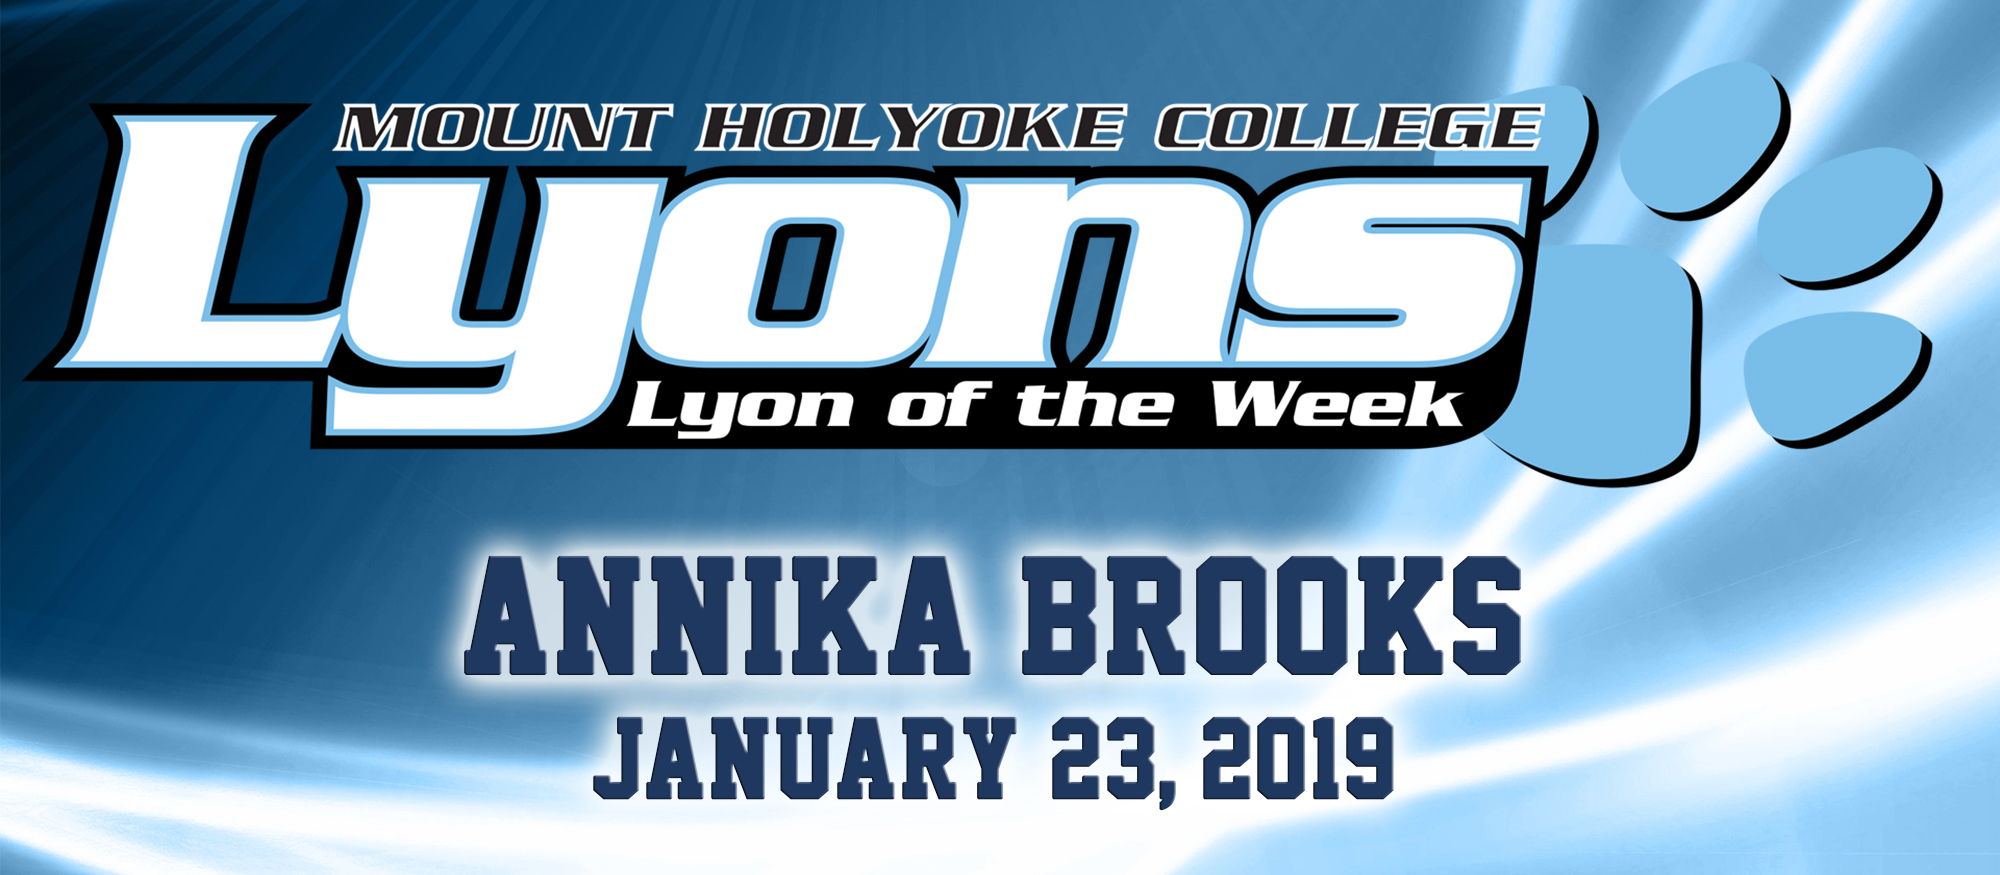 Graphic for the January 23, 2019 Lyon of the Week - Annika Brooks from basketball.